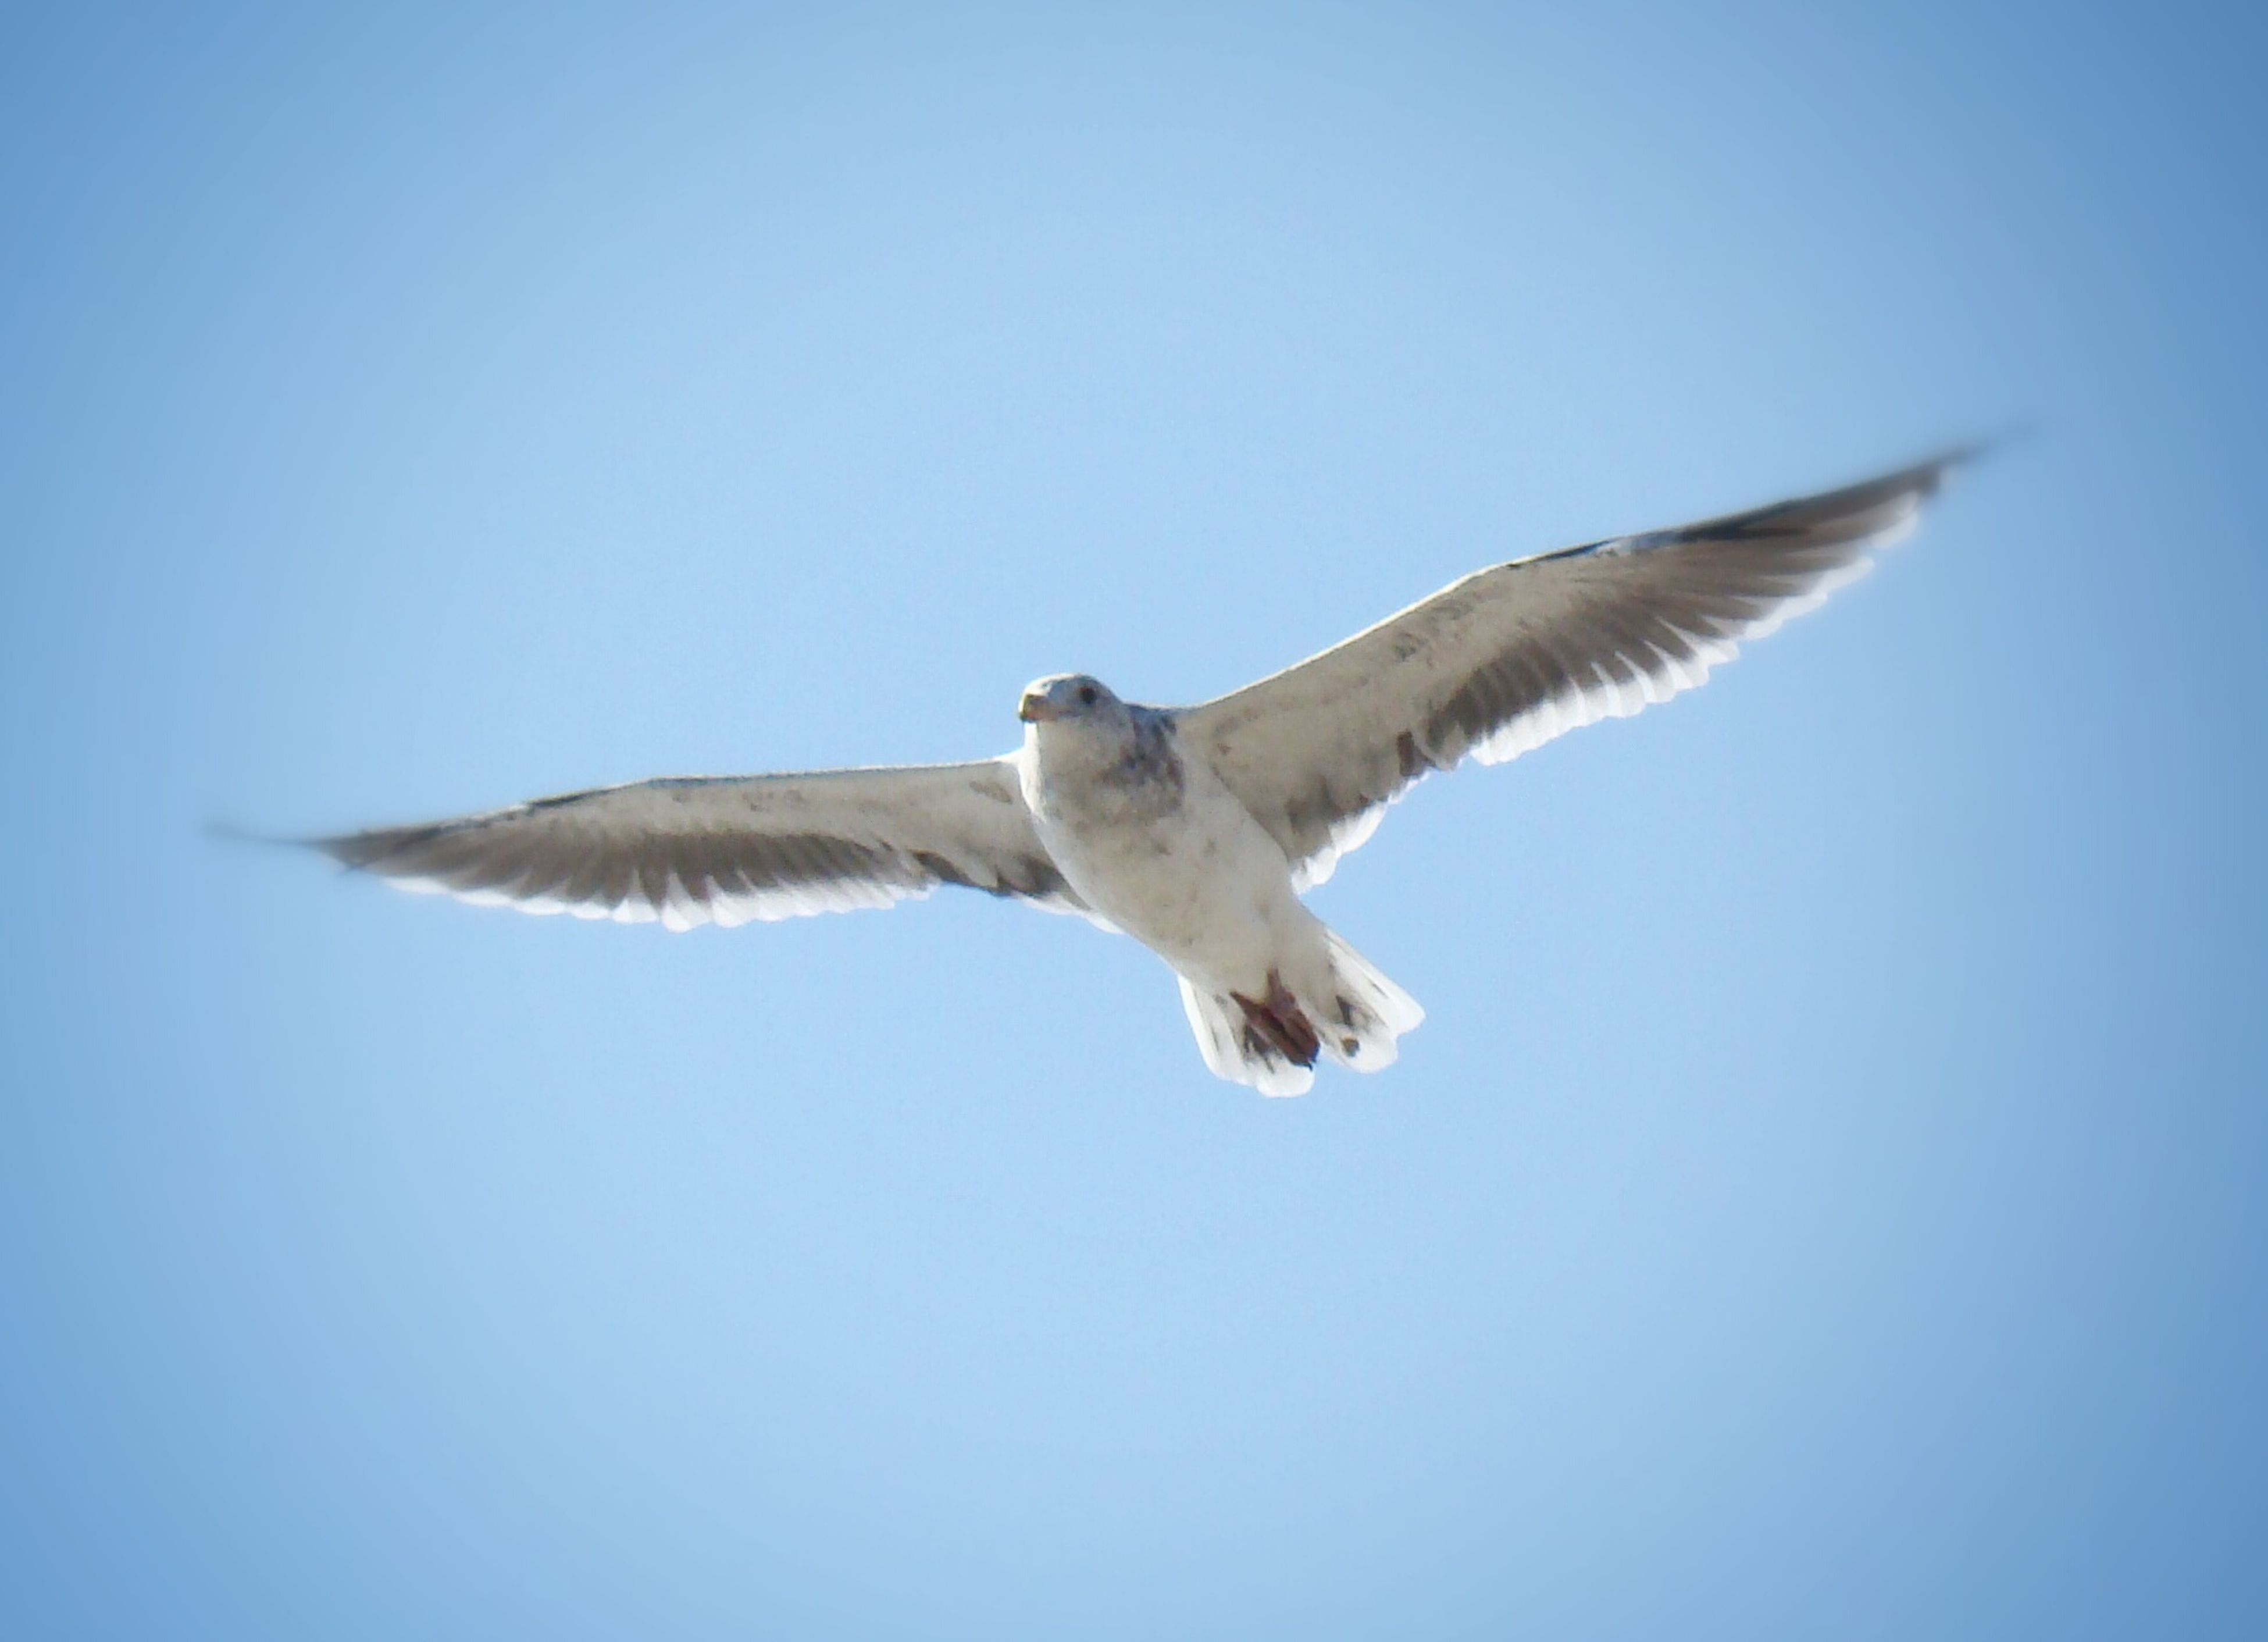 animal themes, animals in the wild, spread wings, bird, flying, wildlife, clear sky, one animal, seagull, blue, low angle view, copy space, mid-air, nature, full length, flight, zoology, vertebrate, animal wing, beauty in nature